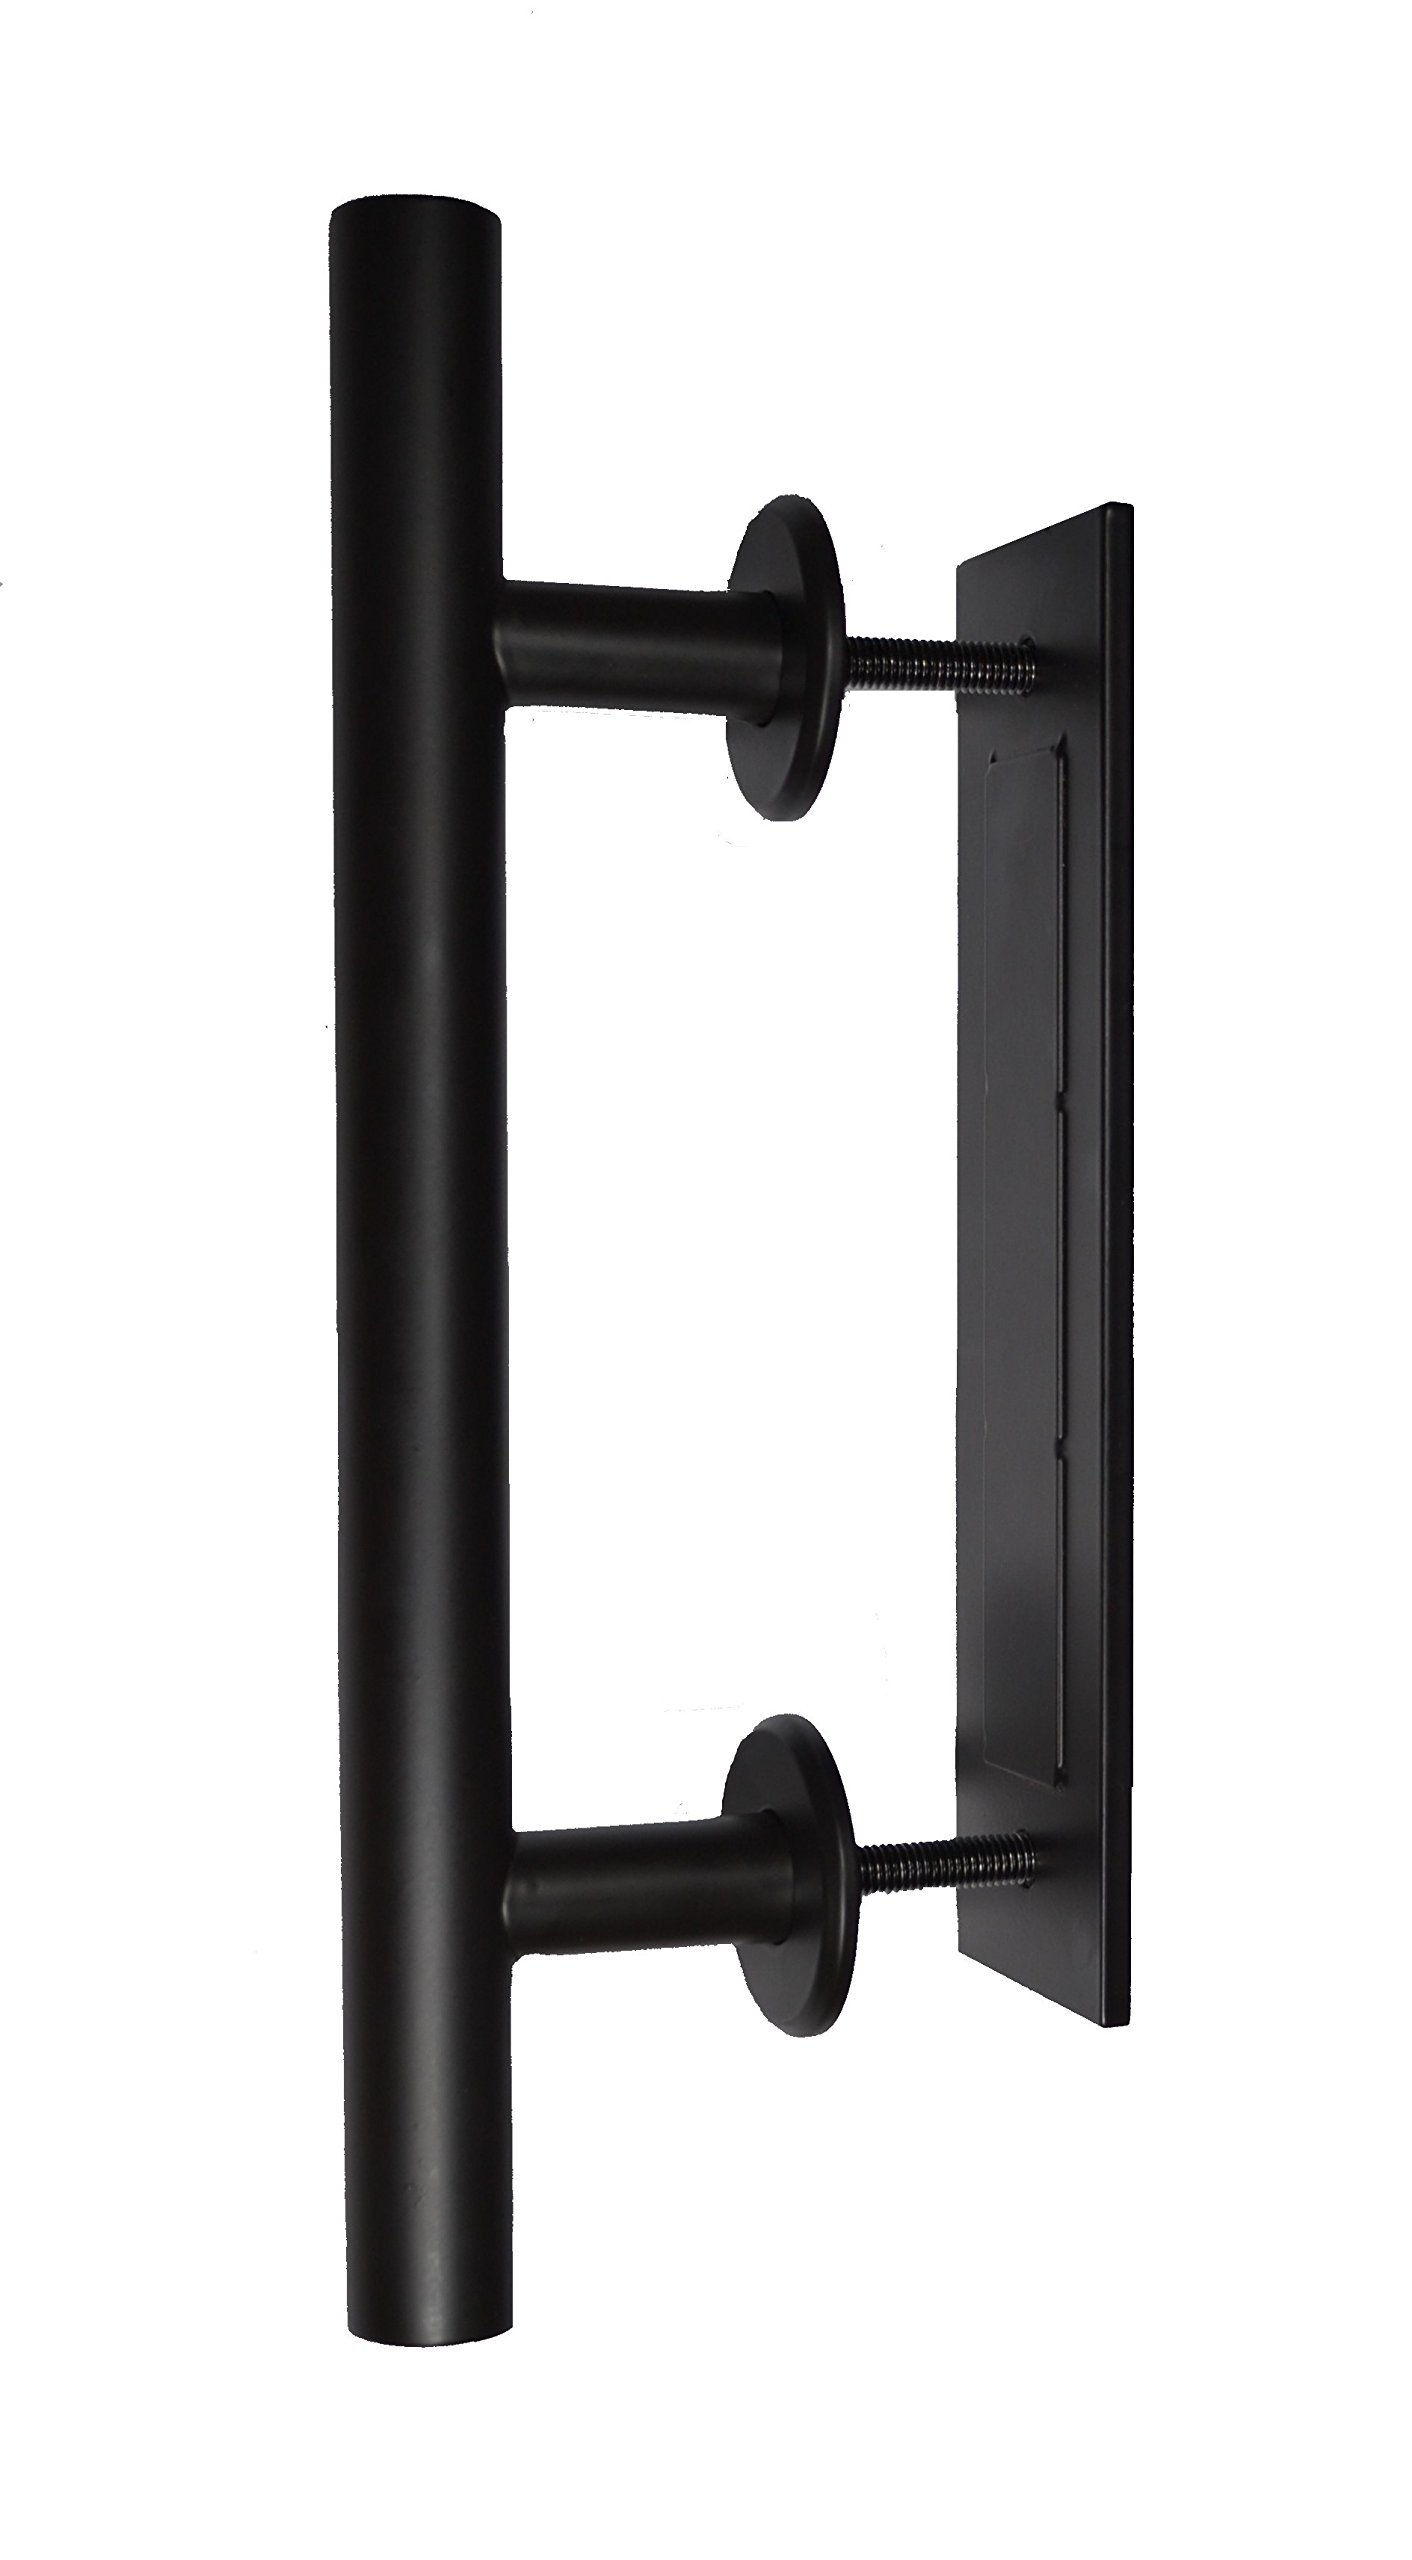 """AequHome 12"""" Sliding Barn Door Handle, Durable Steel Construction, Matte Black Finish, Suitable for Door Thickness 1 2/5"""" to 2 1/3"""", Includes Installation Bolts and Wrench by AequHome (Image #1)"""